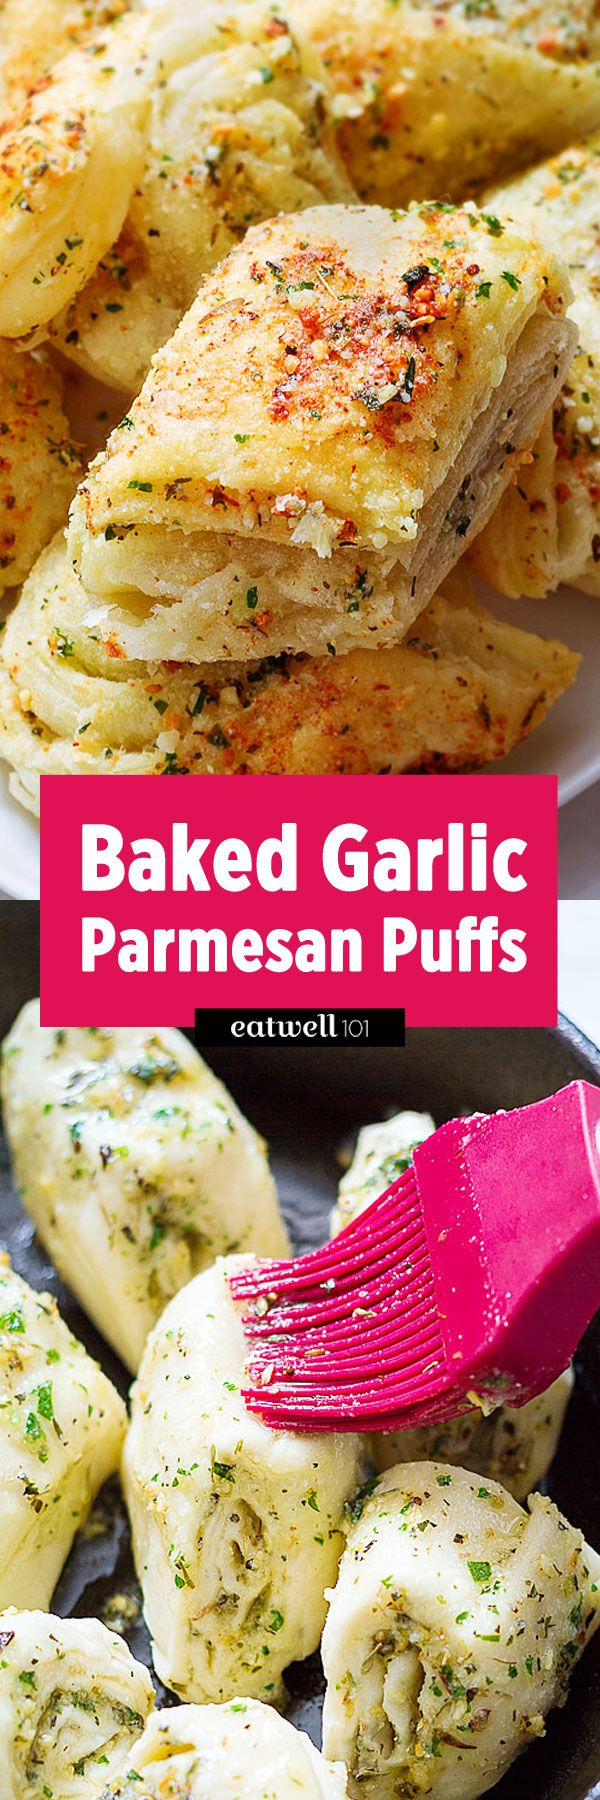 Baked Garlic Parmesan Puffs!! Yum!! Incredibly easy, fool-proof parmesan garlic bites. They come together in less than 20 min and use just basic ingredients!!!